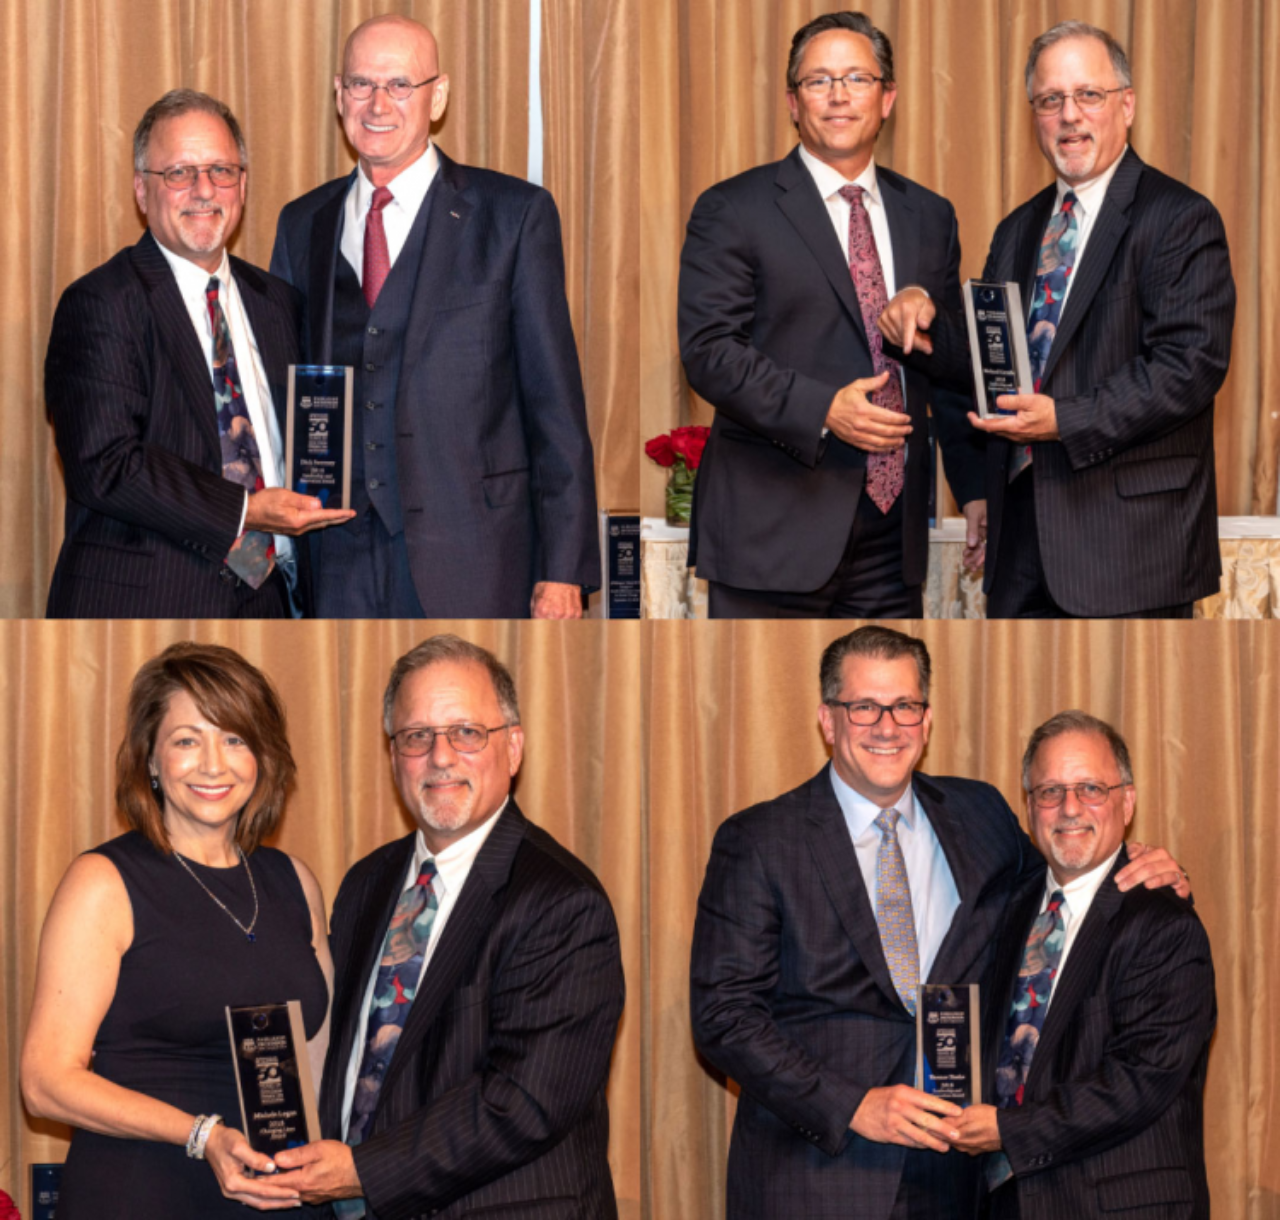 The 2018 Silberman 50th anniversary honorees with Dean Andrew Rosman: